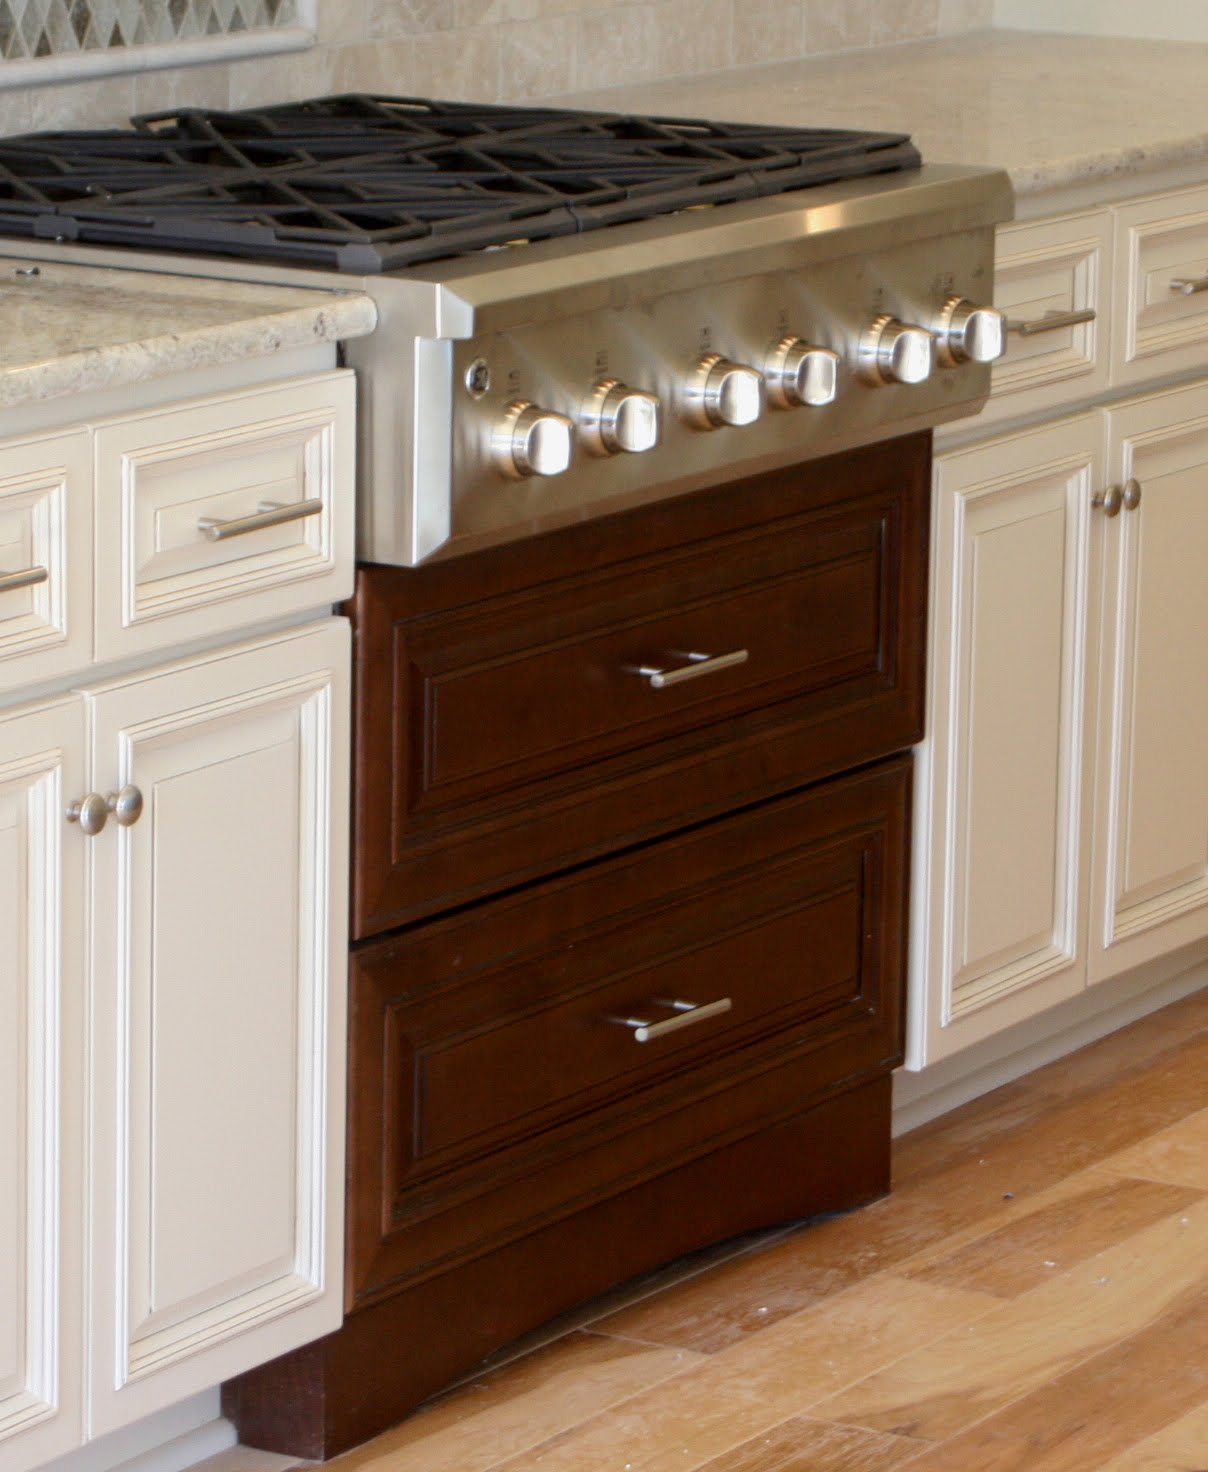 Built in stove top ideas homesfeed for Kitchen built in cabinets